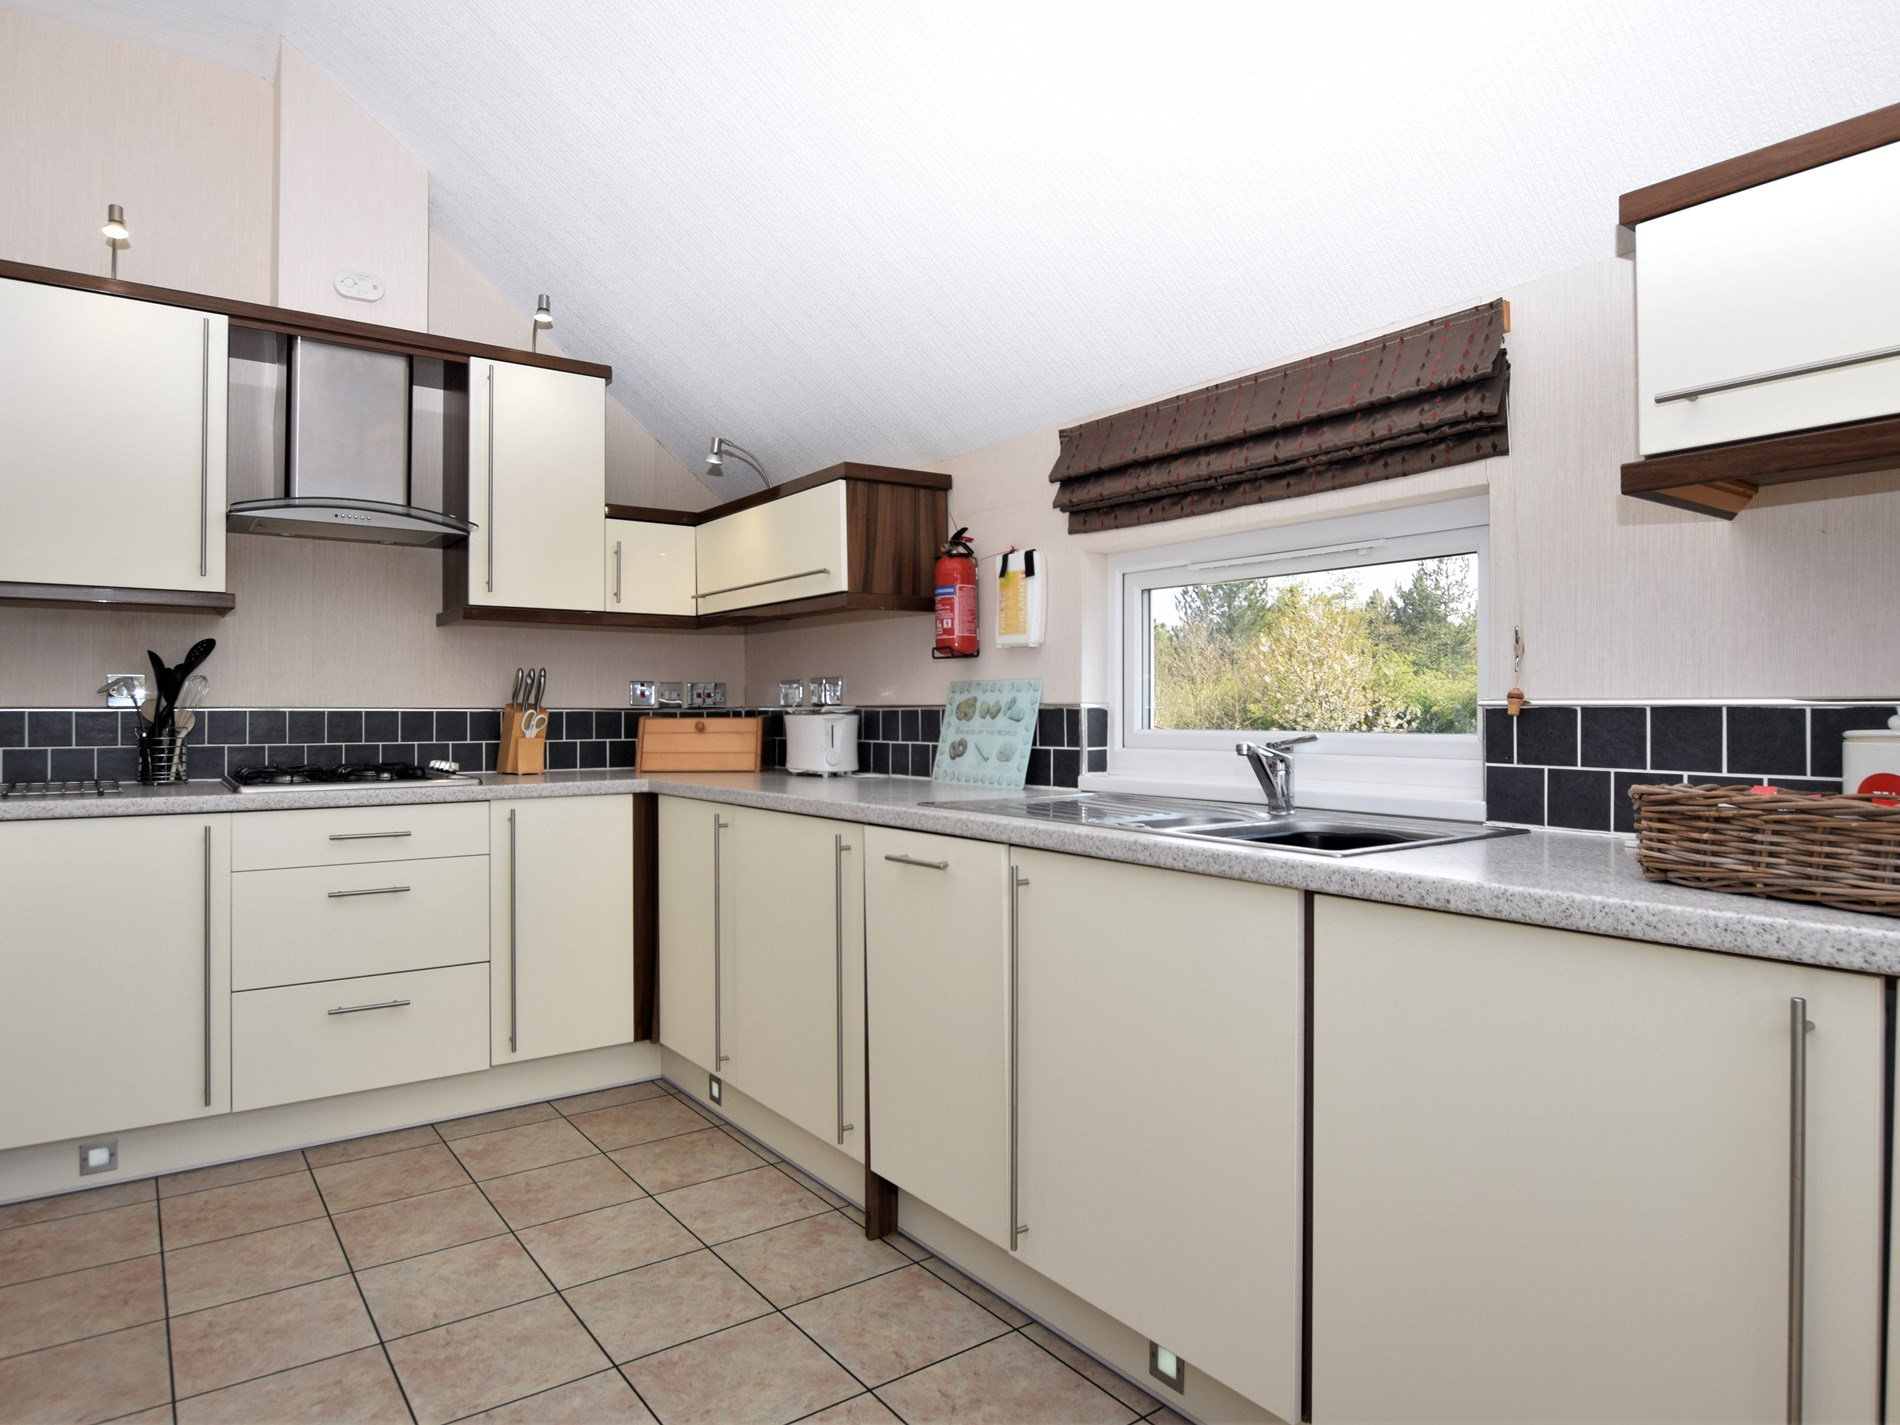 3 Bedroom Cottage in Wisbech, East Anglia